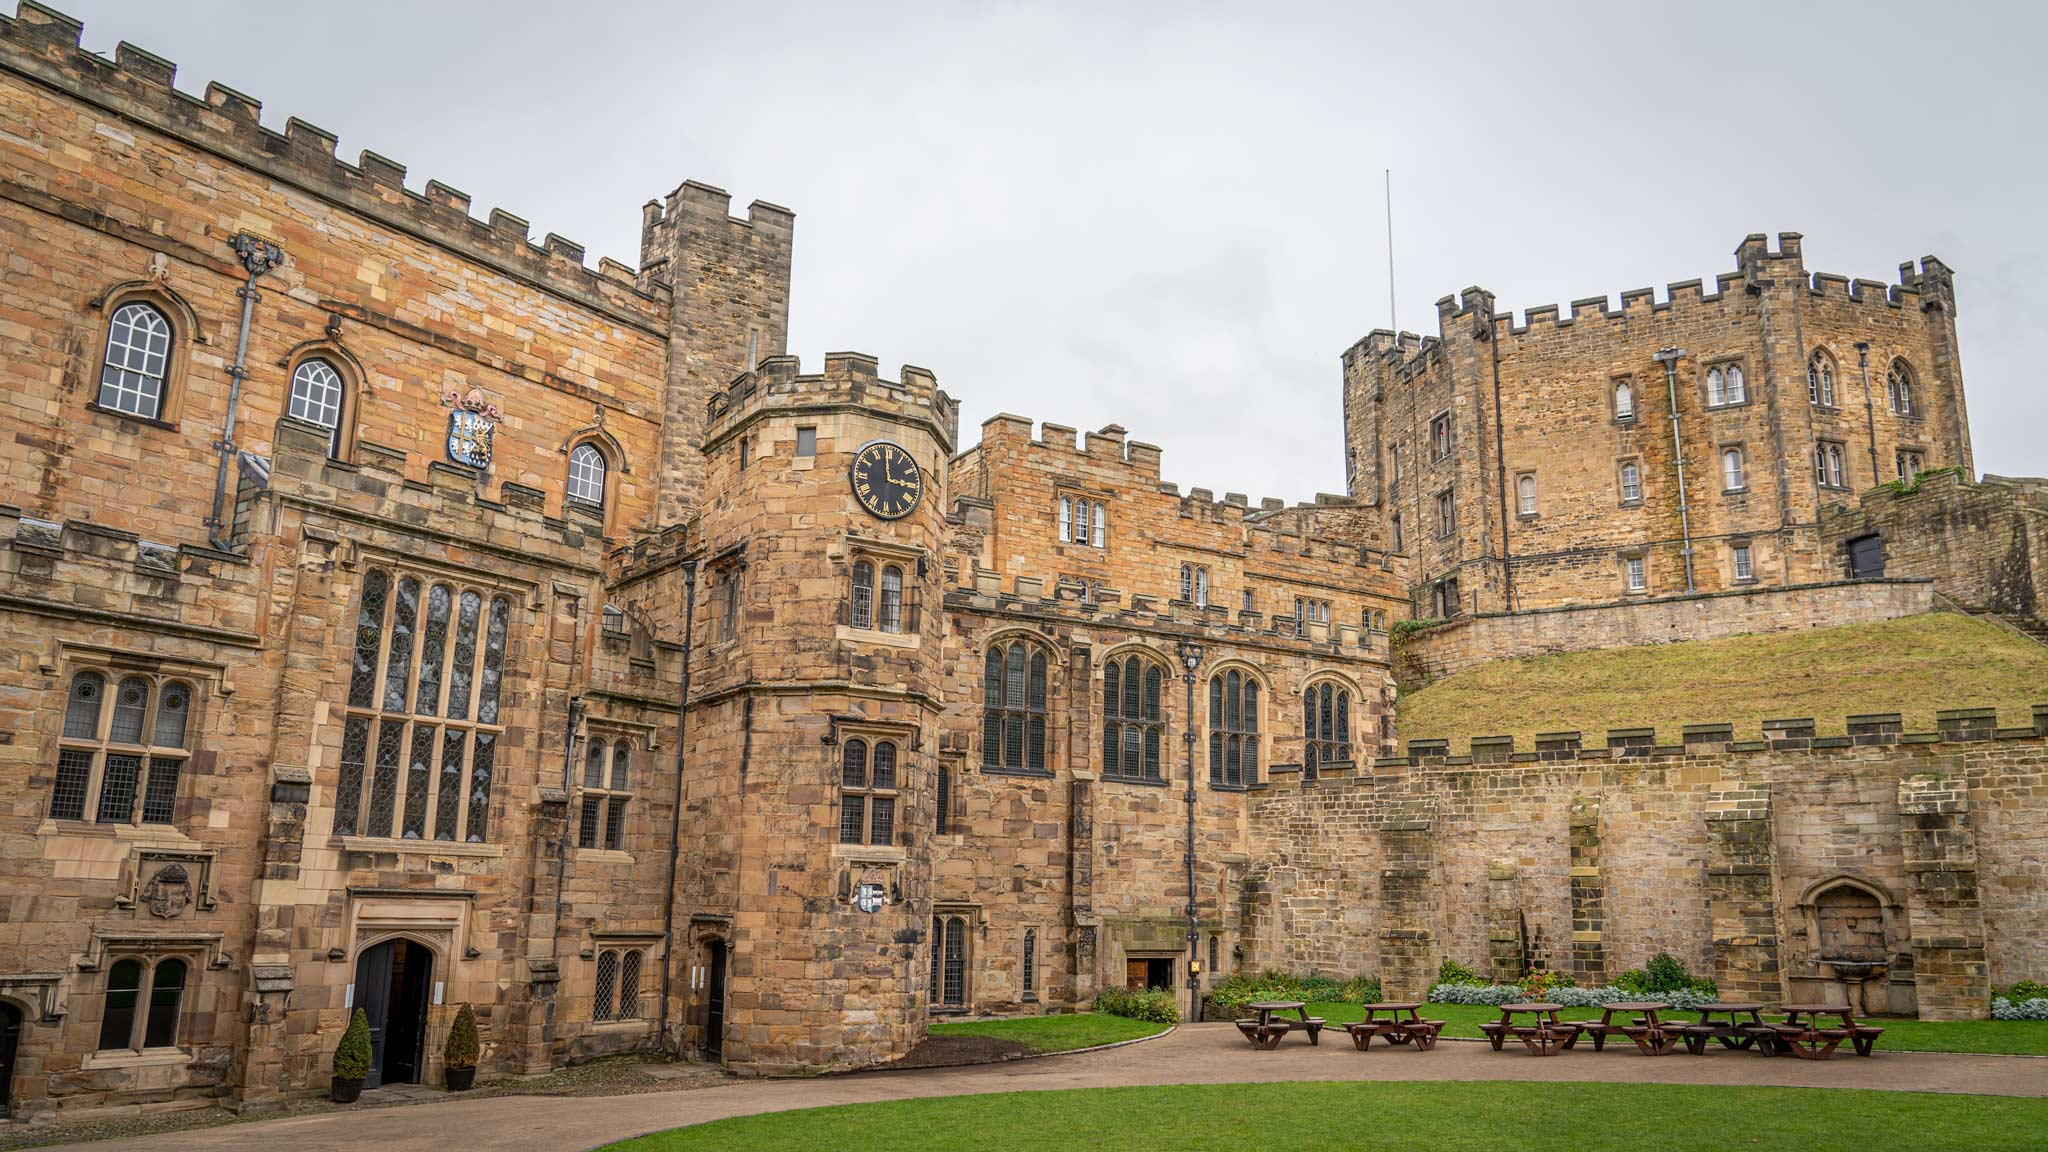 Outside view of Durham Castle with an octagonal tower to the side